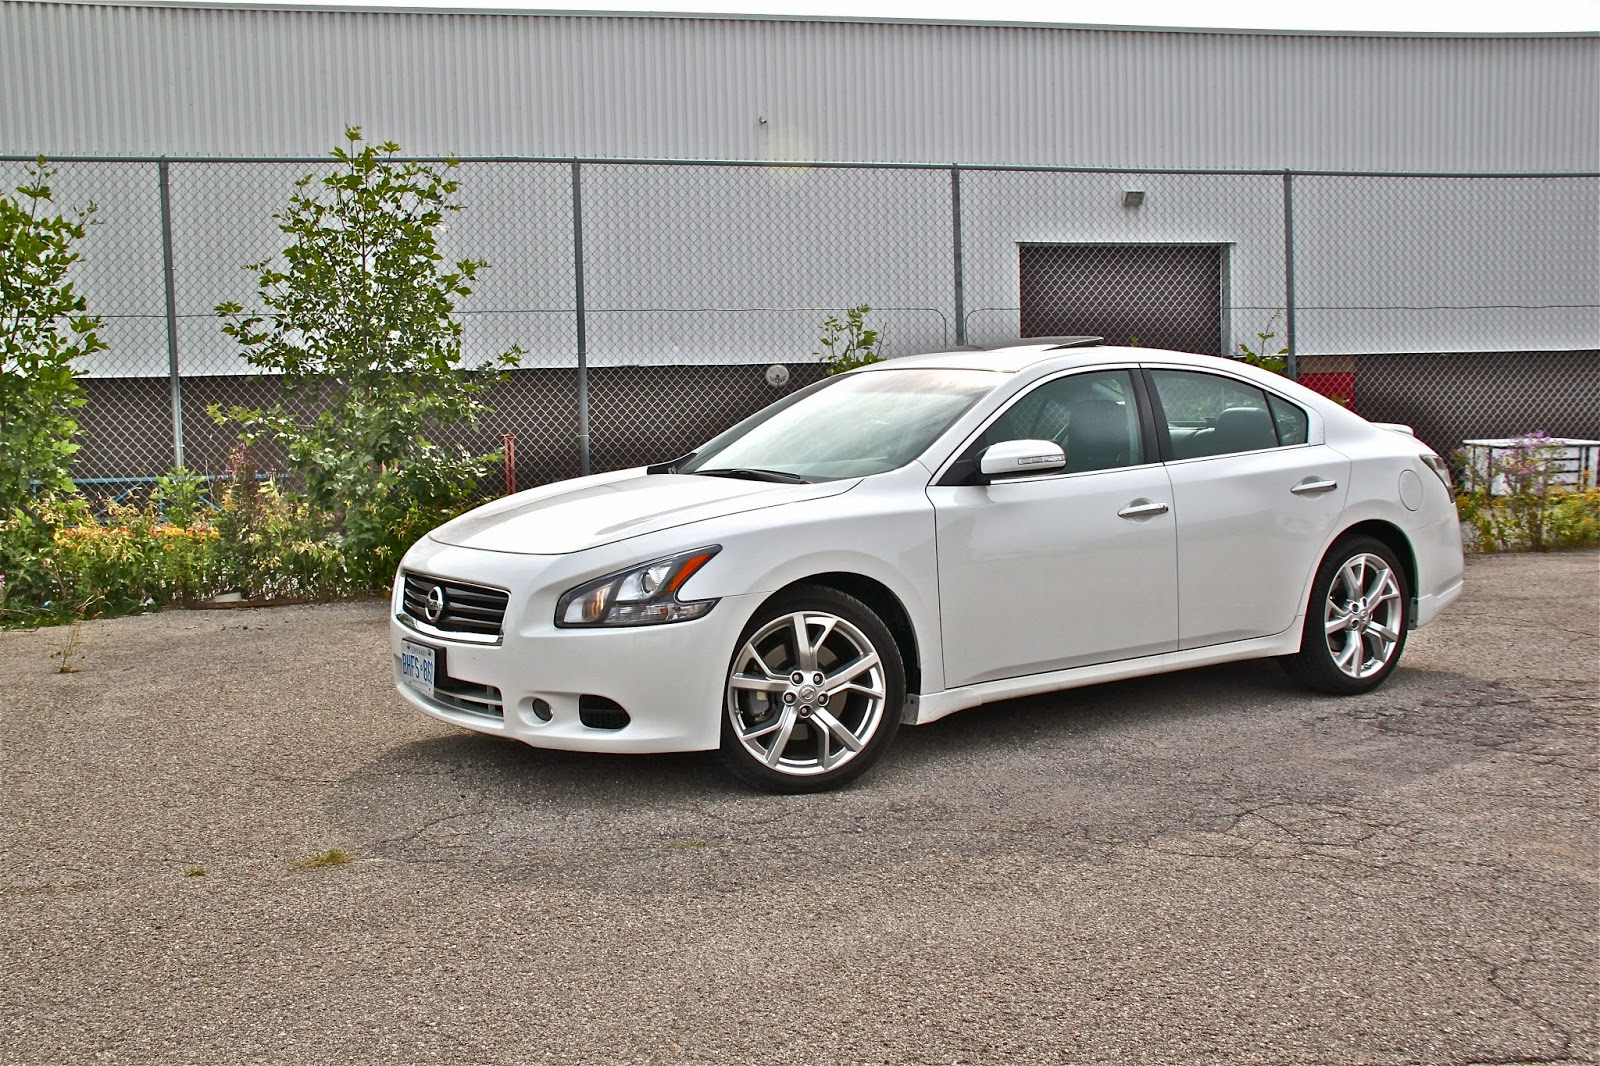 Exterior Photos moreover Nissan Announces Pricing For 2011 Maxima moreover Performance And Fuel Economy 2011 Chevy Impala moreover 2009 Nissan Maxima Pictures furthermore Nissan Murano 2006 Aux Input 2. on 2012 nissan maxima silver